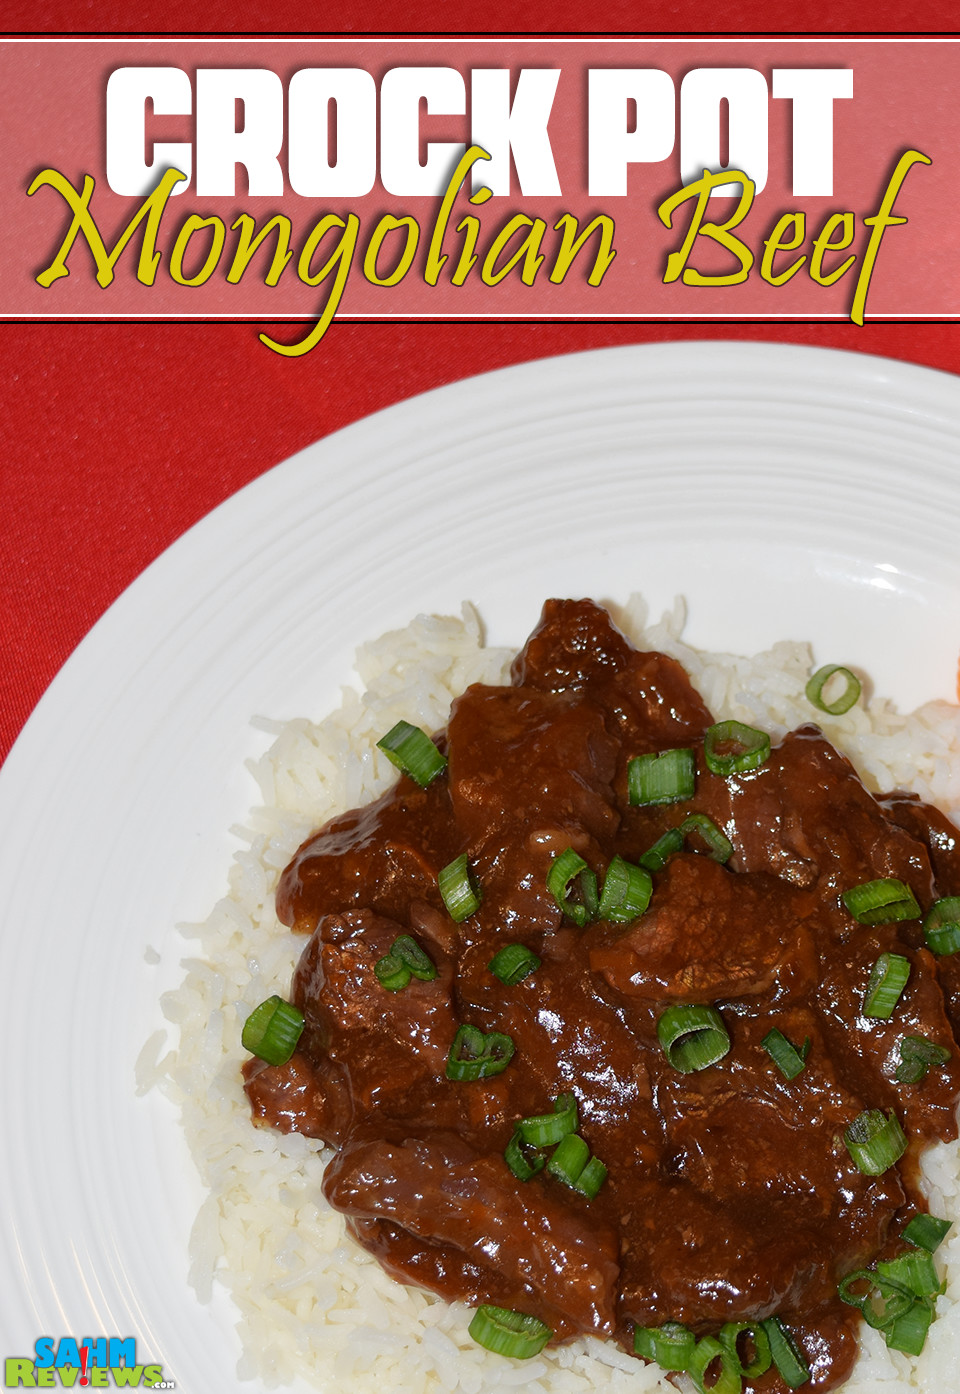 Looking for a simple recipe the kids will enjoy and can make for the whole family? Try out this slow cooker Mongolian Beef recipe the next time the kids are looking for something to do! - SahmReviews.com